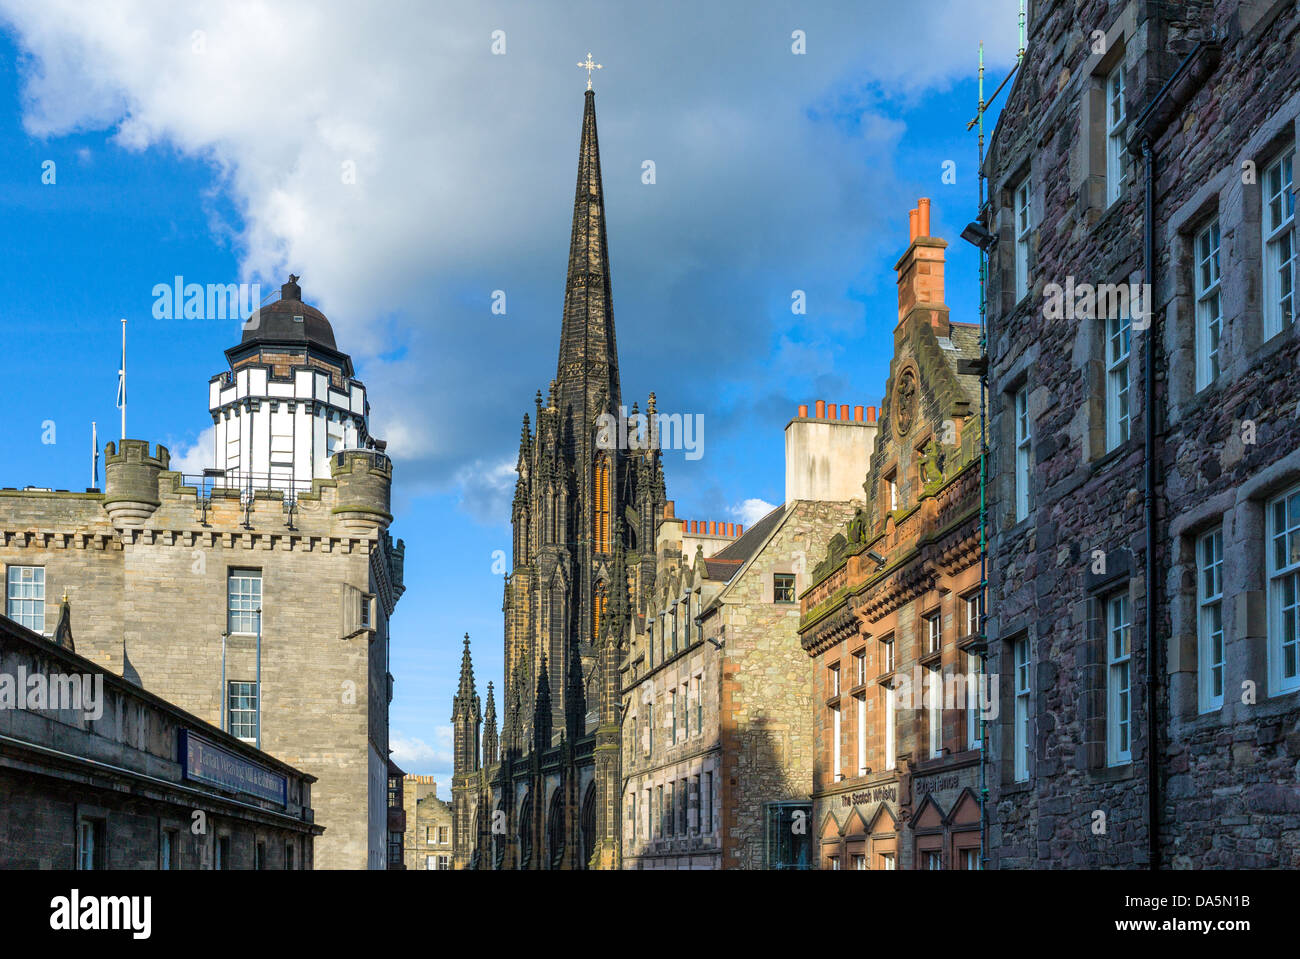 Europe Great Britain, Scotland, Edinburgh, Royal Mile, the Camera Obscura and the Hub tower on the right. - Stock Image